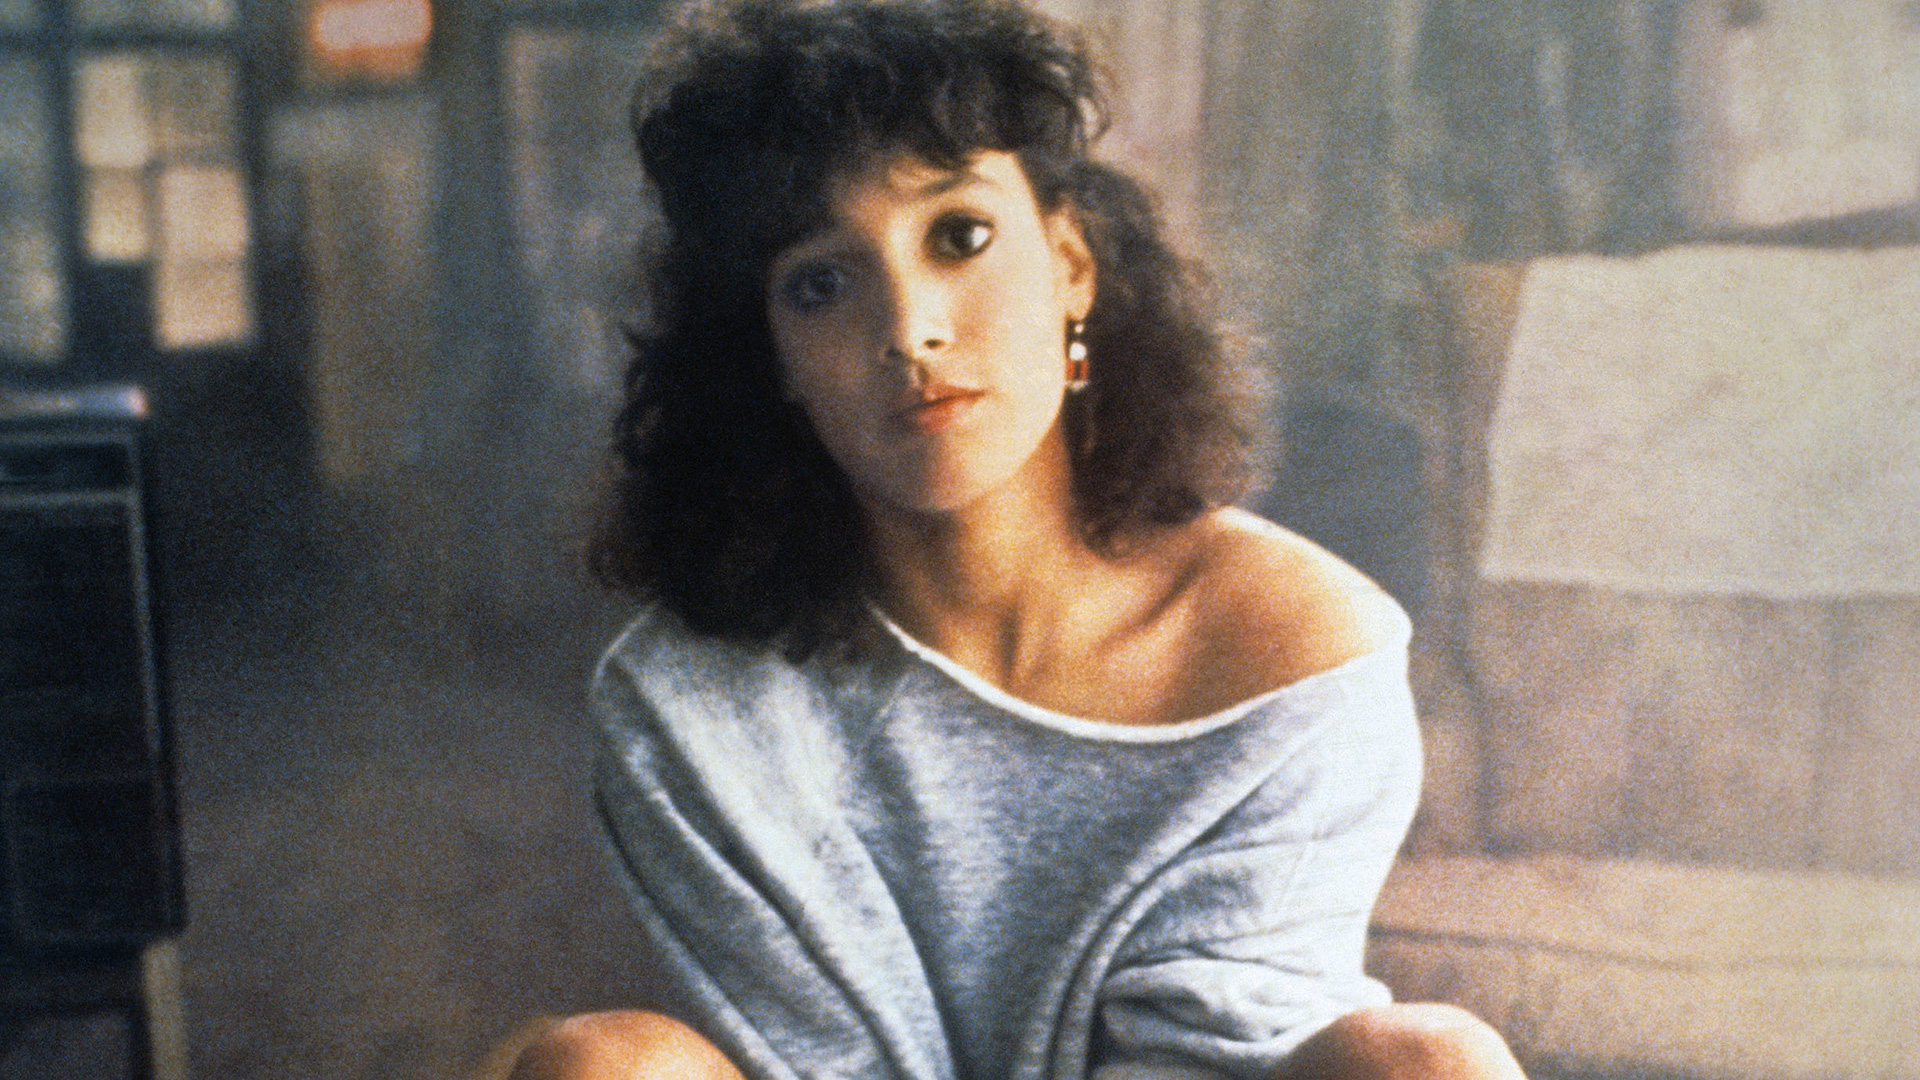 April 15 1983 Flashdance Was Released Forever Changing Film